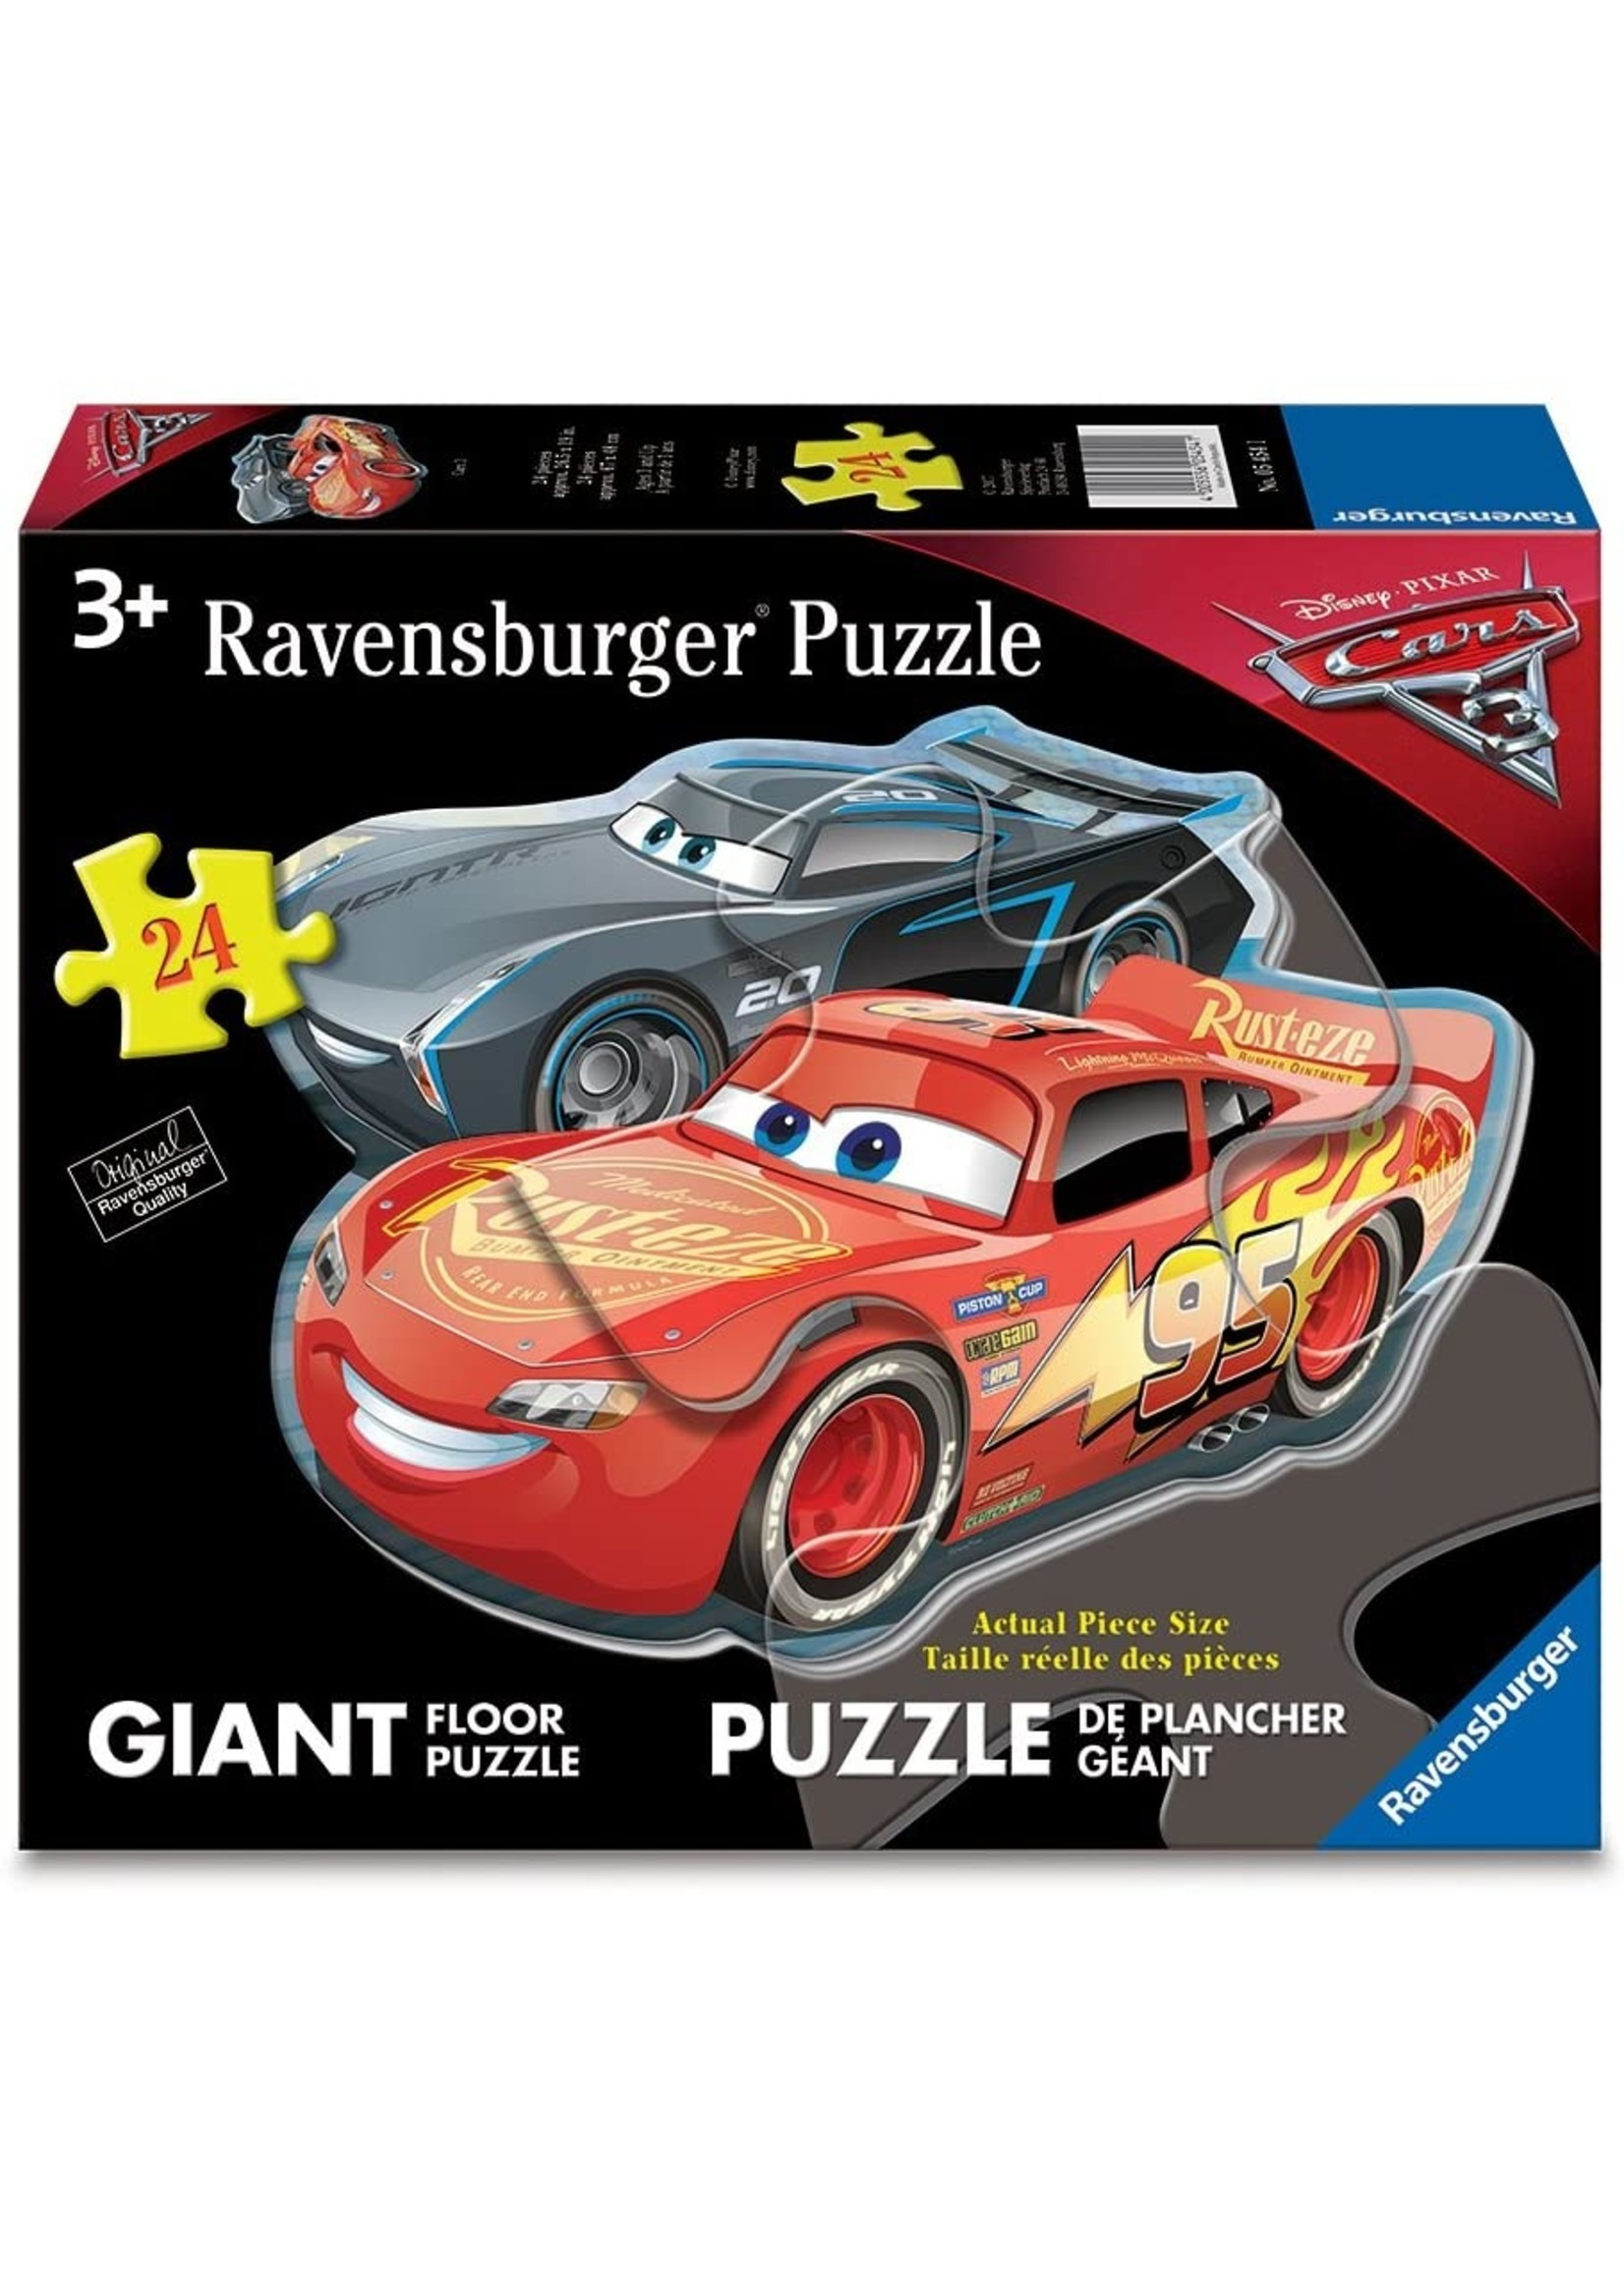 Puzzle: Dueling Cars (24 pc Shaped Floor)